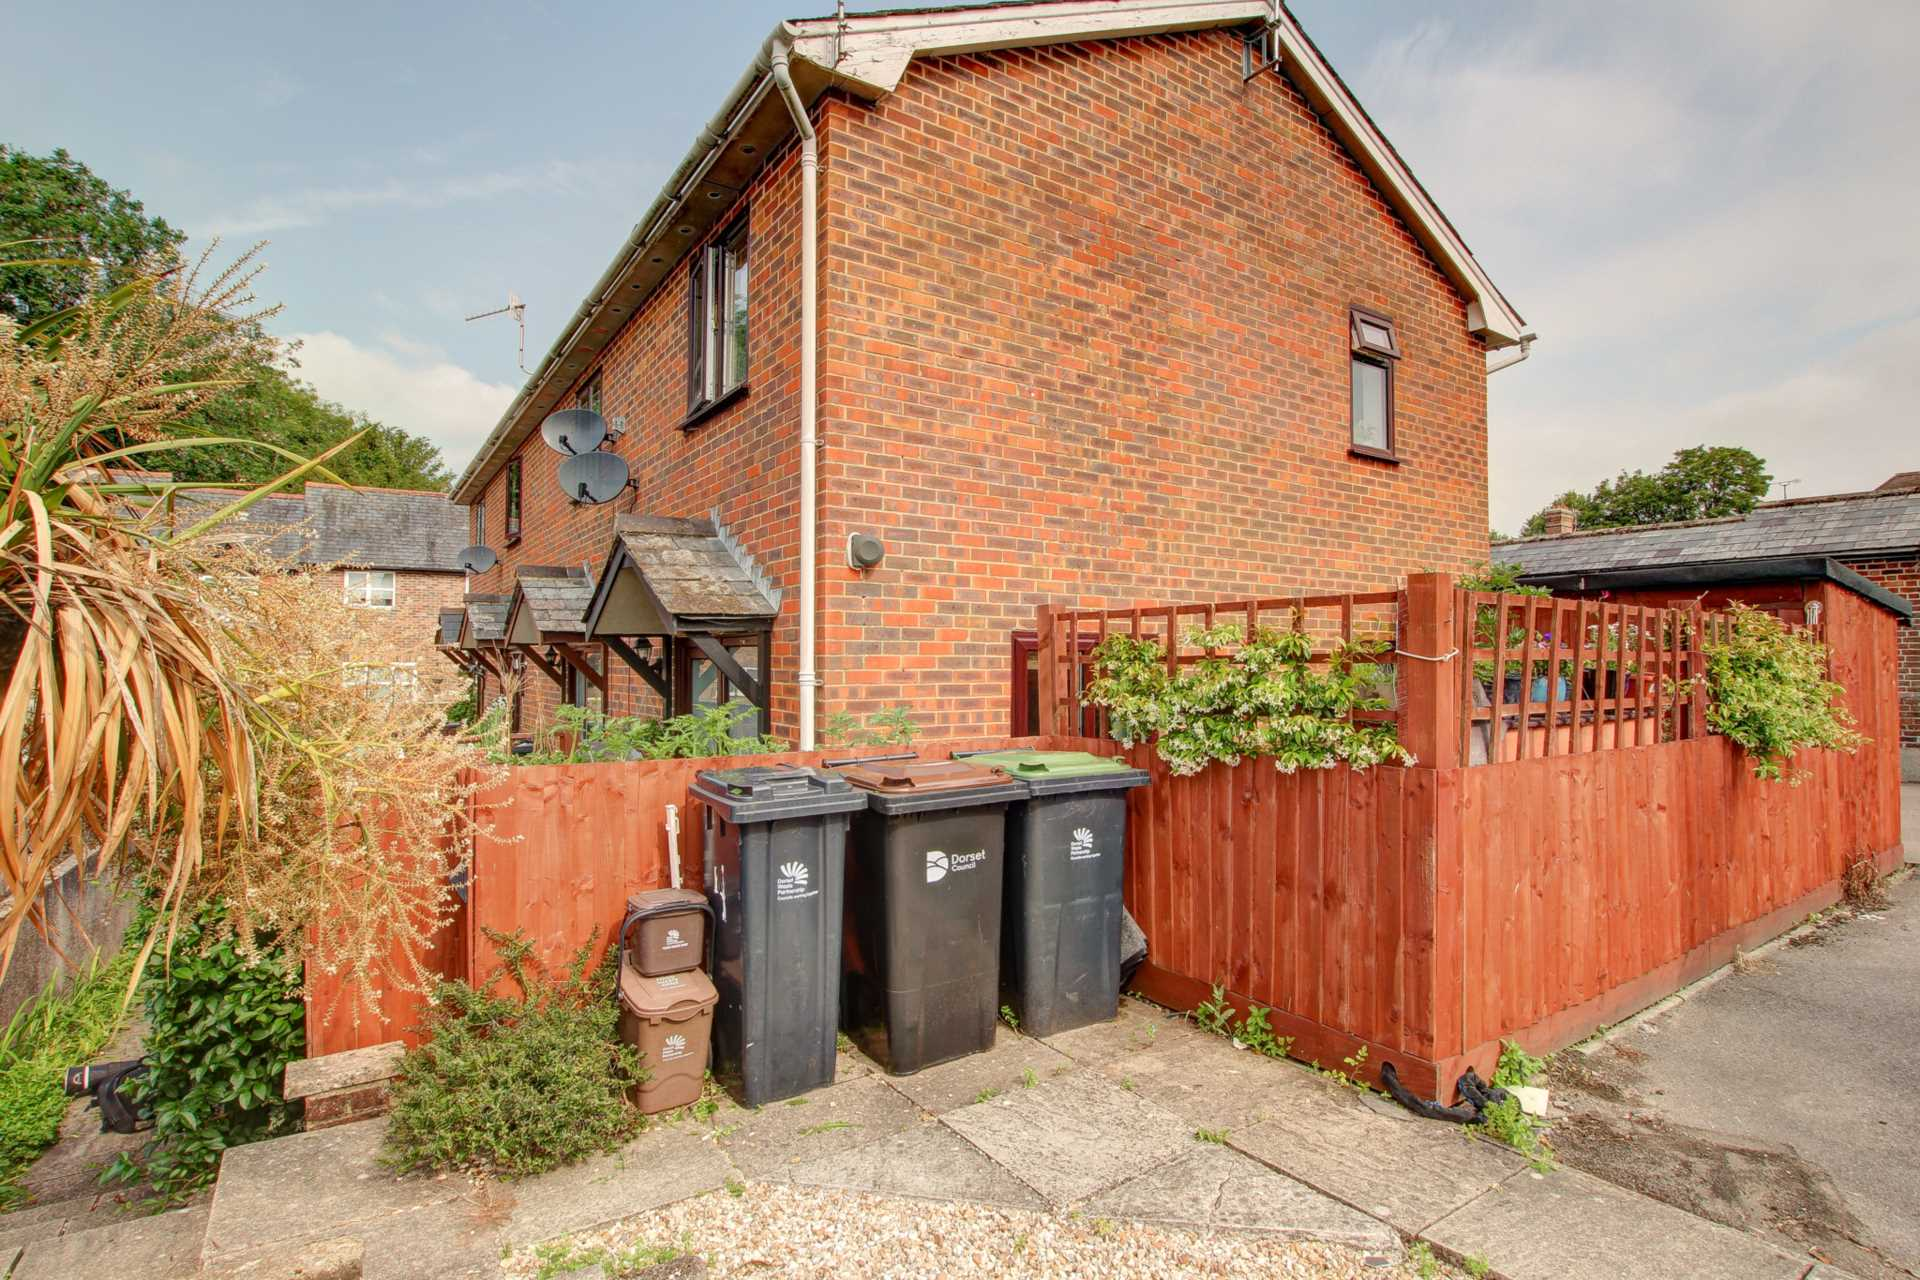 2 bed end of terrace house for sale in The Mews, Shorts Lane, Blandford Forum, Blandford Forum 11